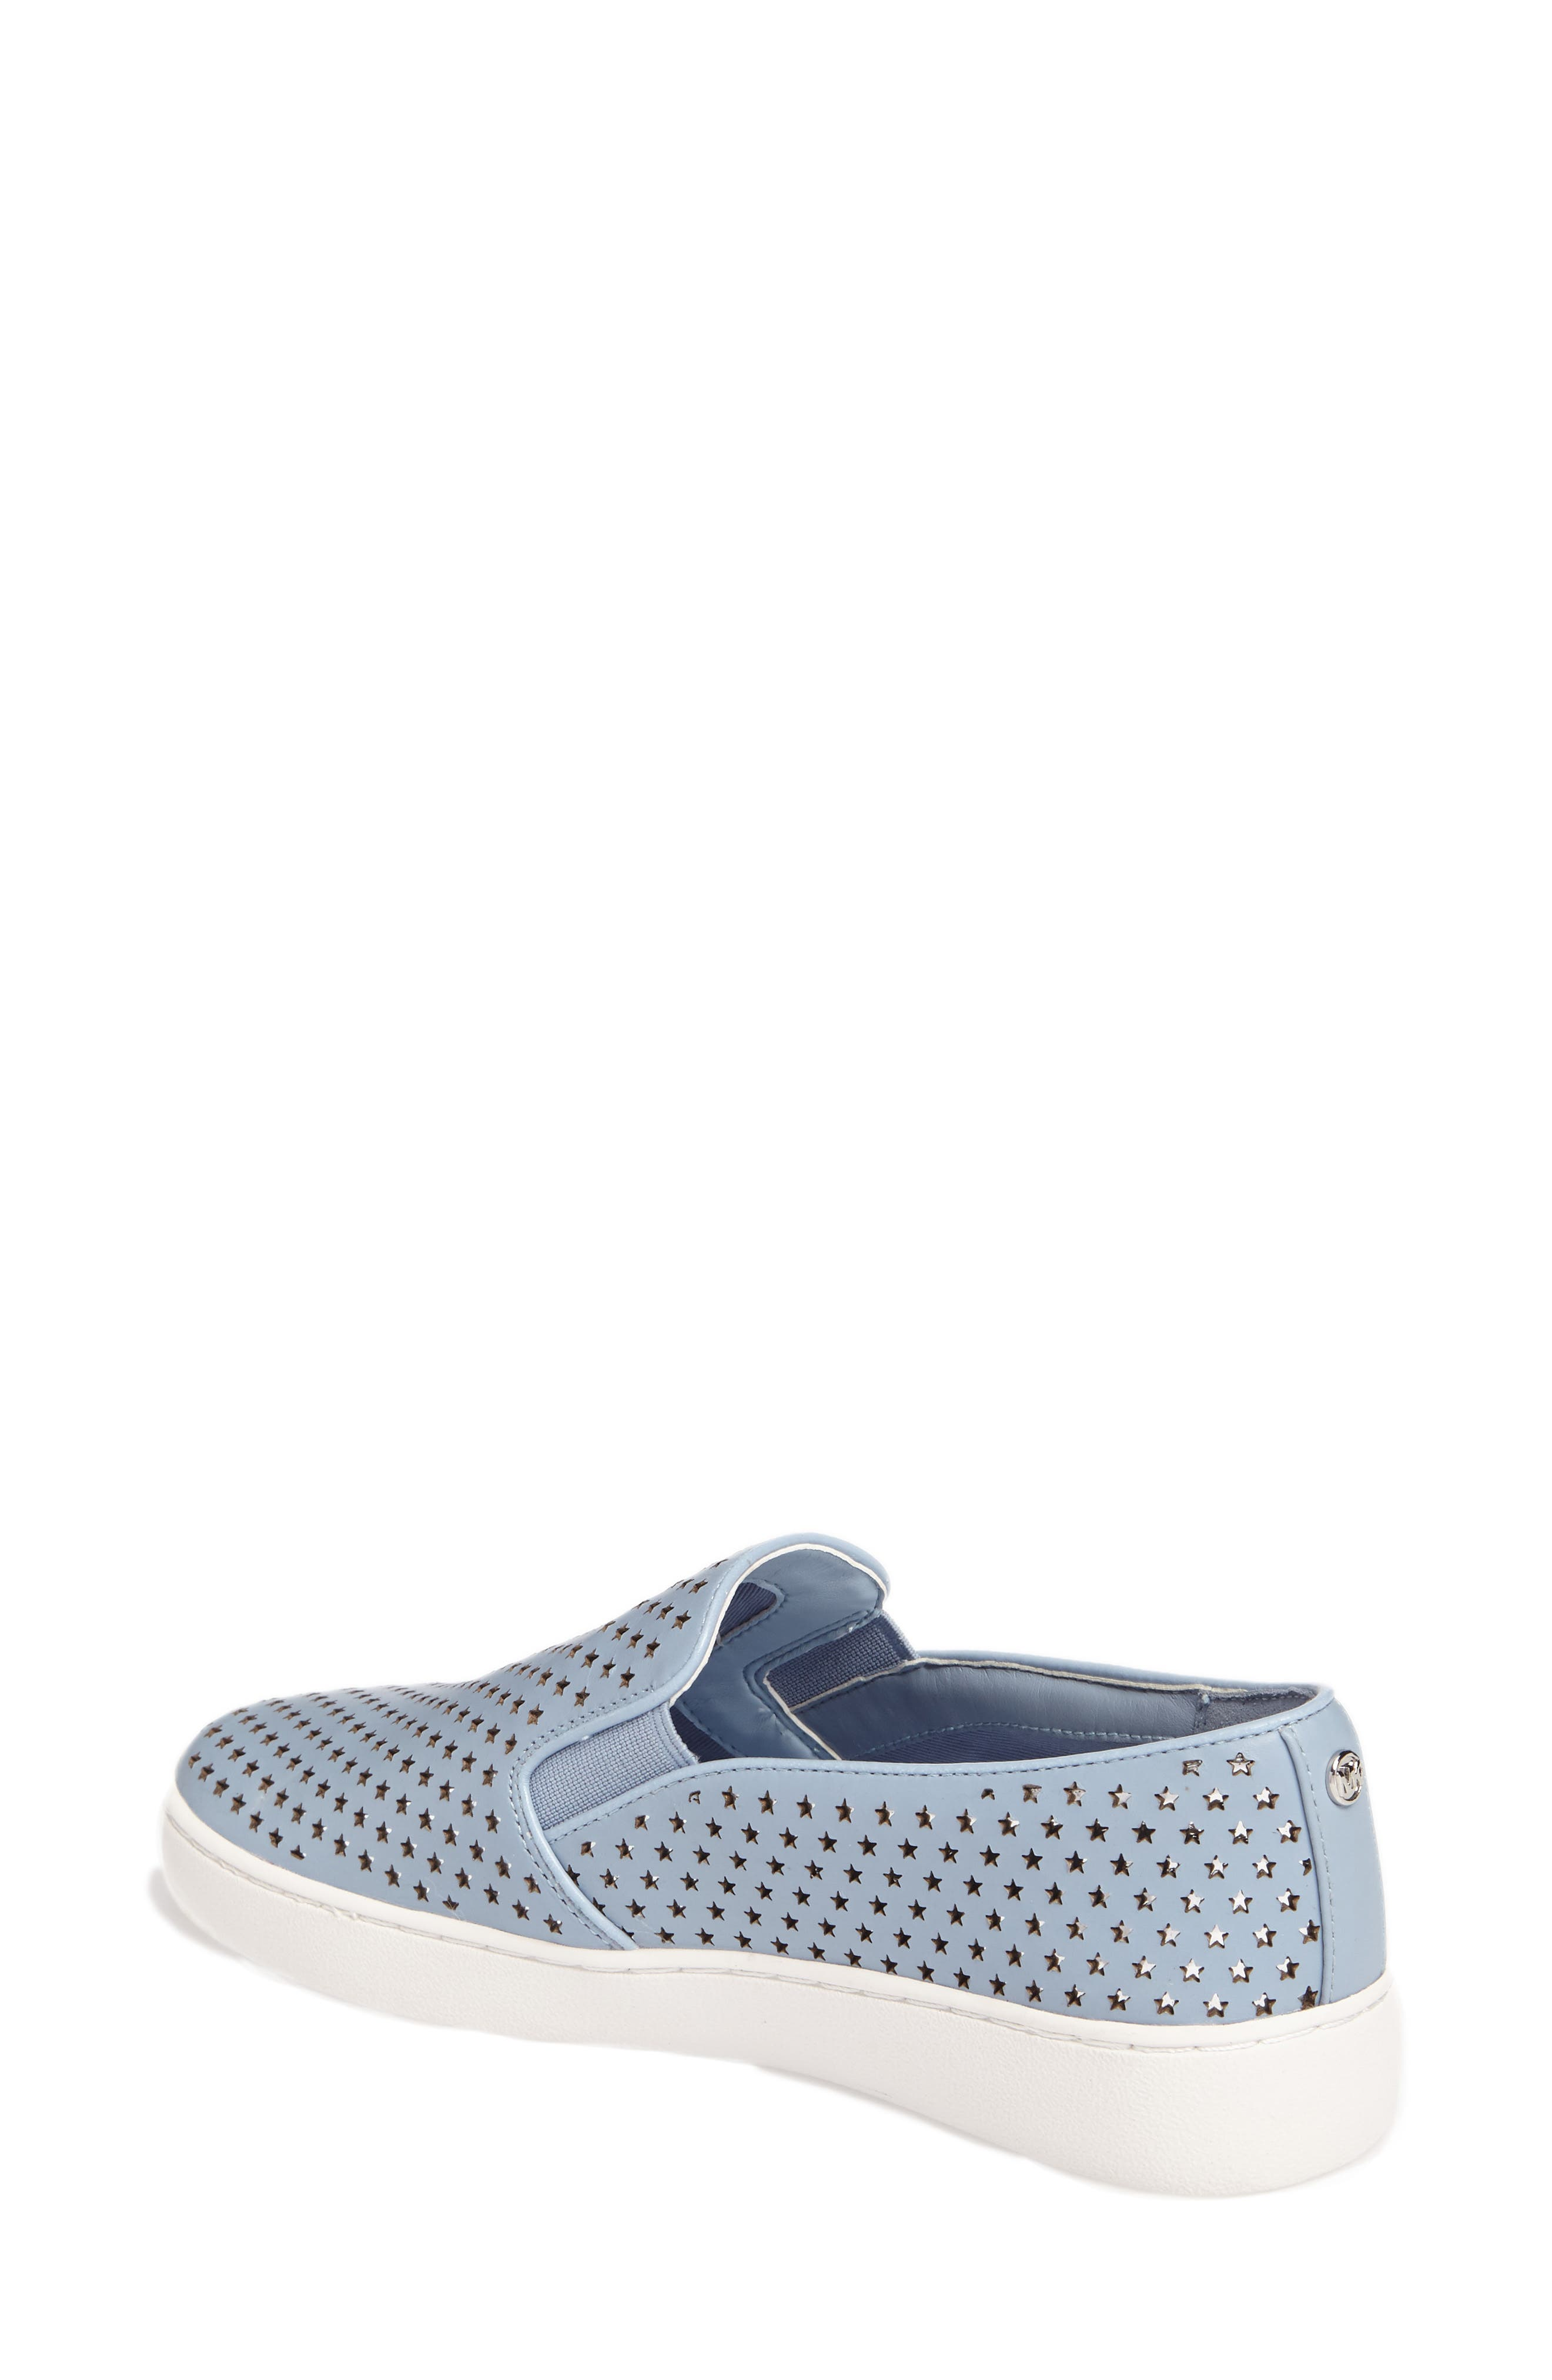 Keaton Slip-On Sneaker,                             Alternate thumbnail 2, color,                             Pale Blue Perforated Star